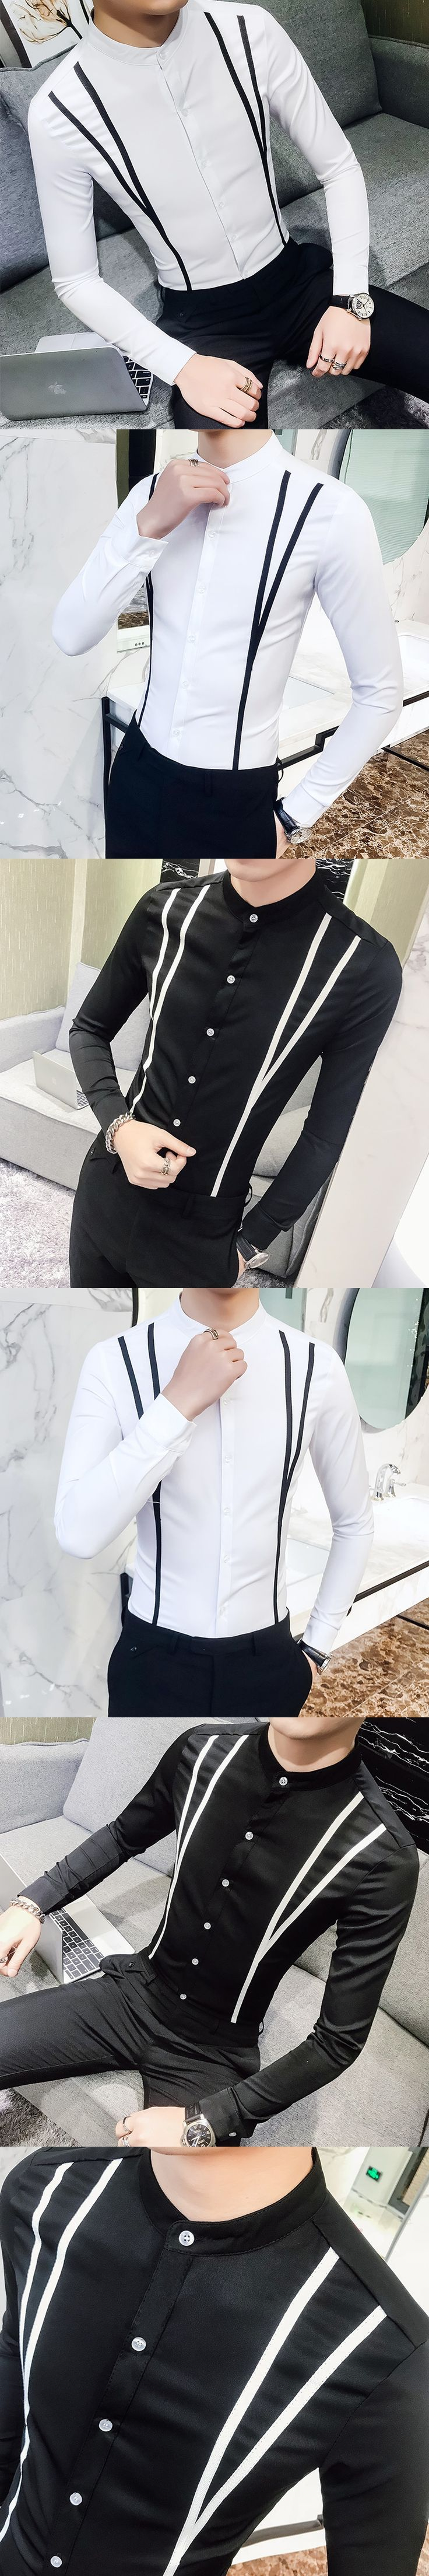 New 2018 Spring Dress Shirts High Quality Long Sleeve Mens Casual Shirt Men Plus Size Slim Fit Front Stripe Social Shirts Male